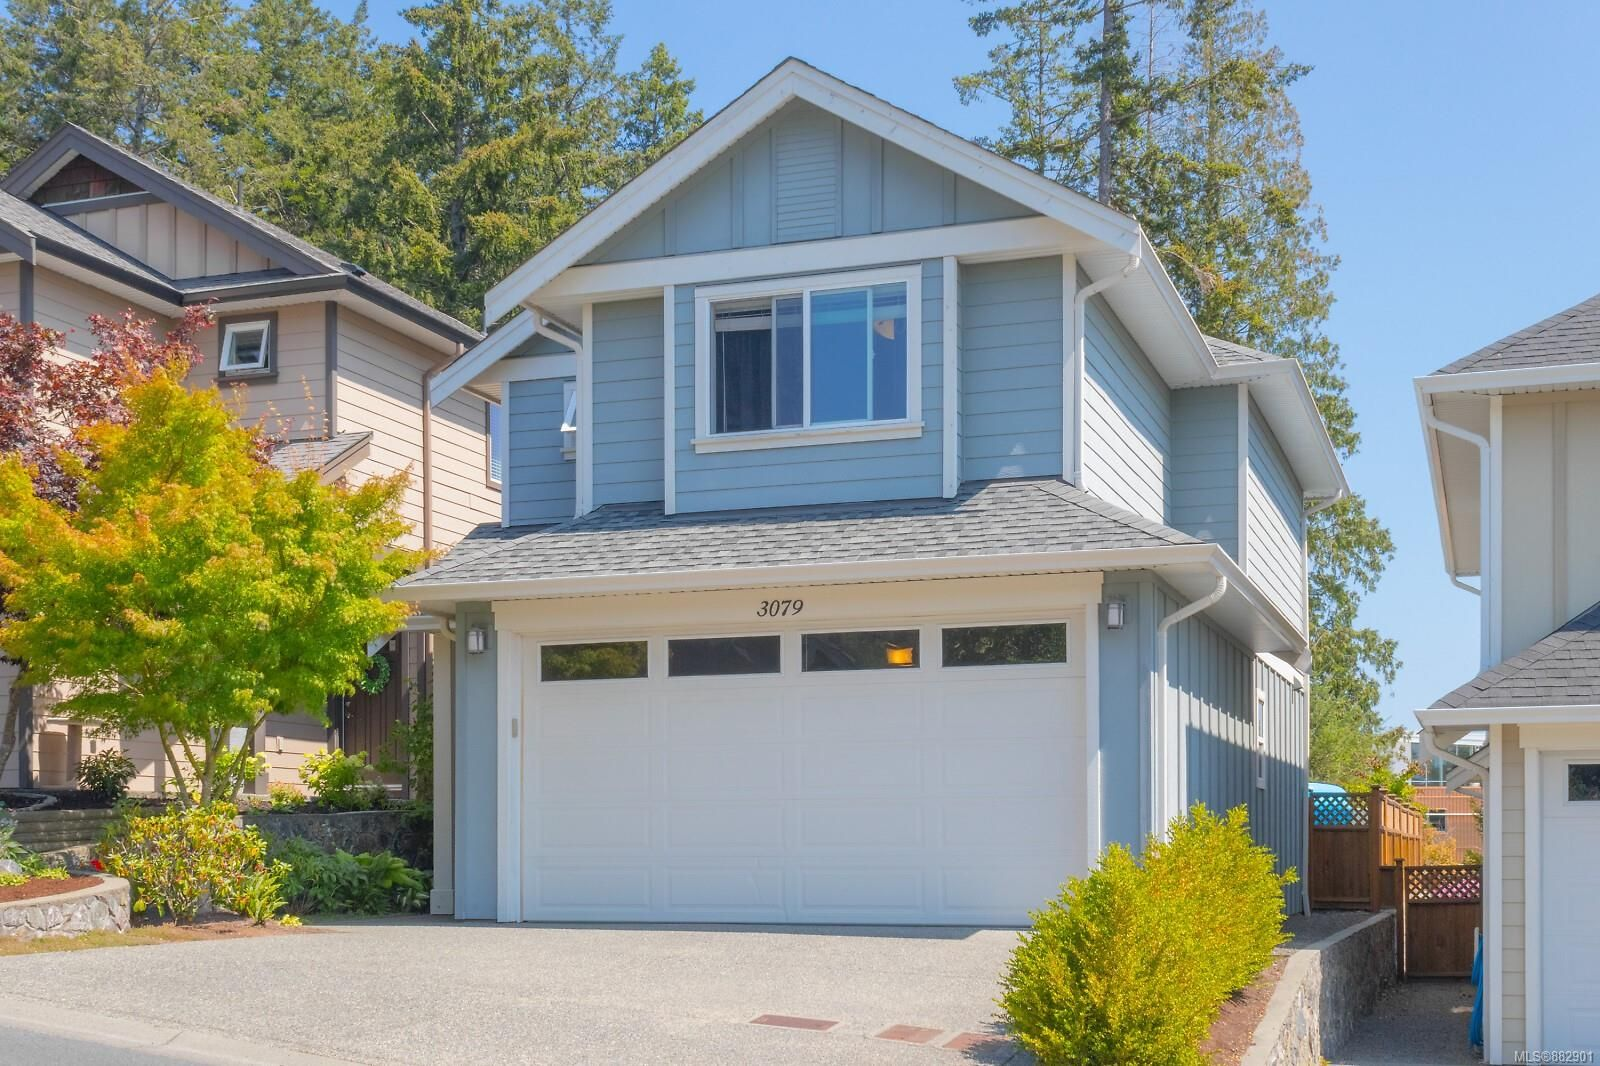 Main Photo: 3079 Alouette Dr in : La Westhills House for sale (Langford)  : MLS®# 882901